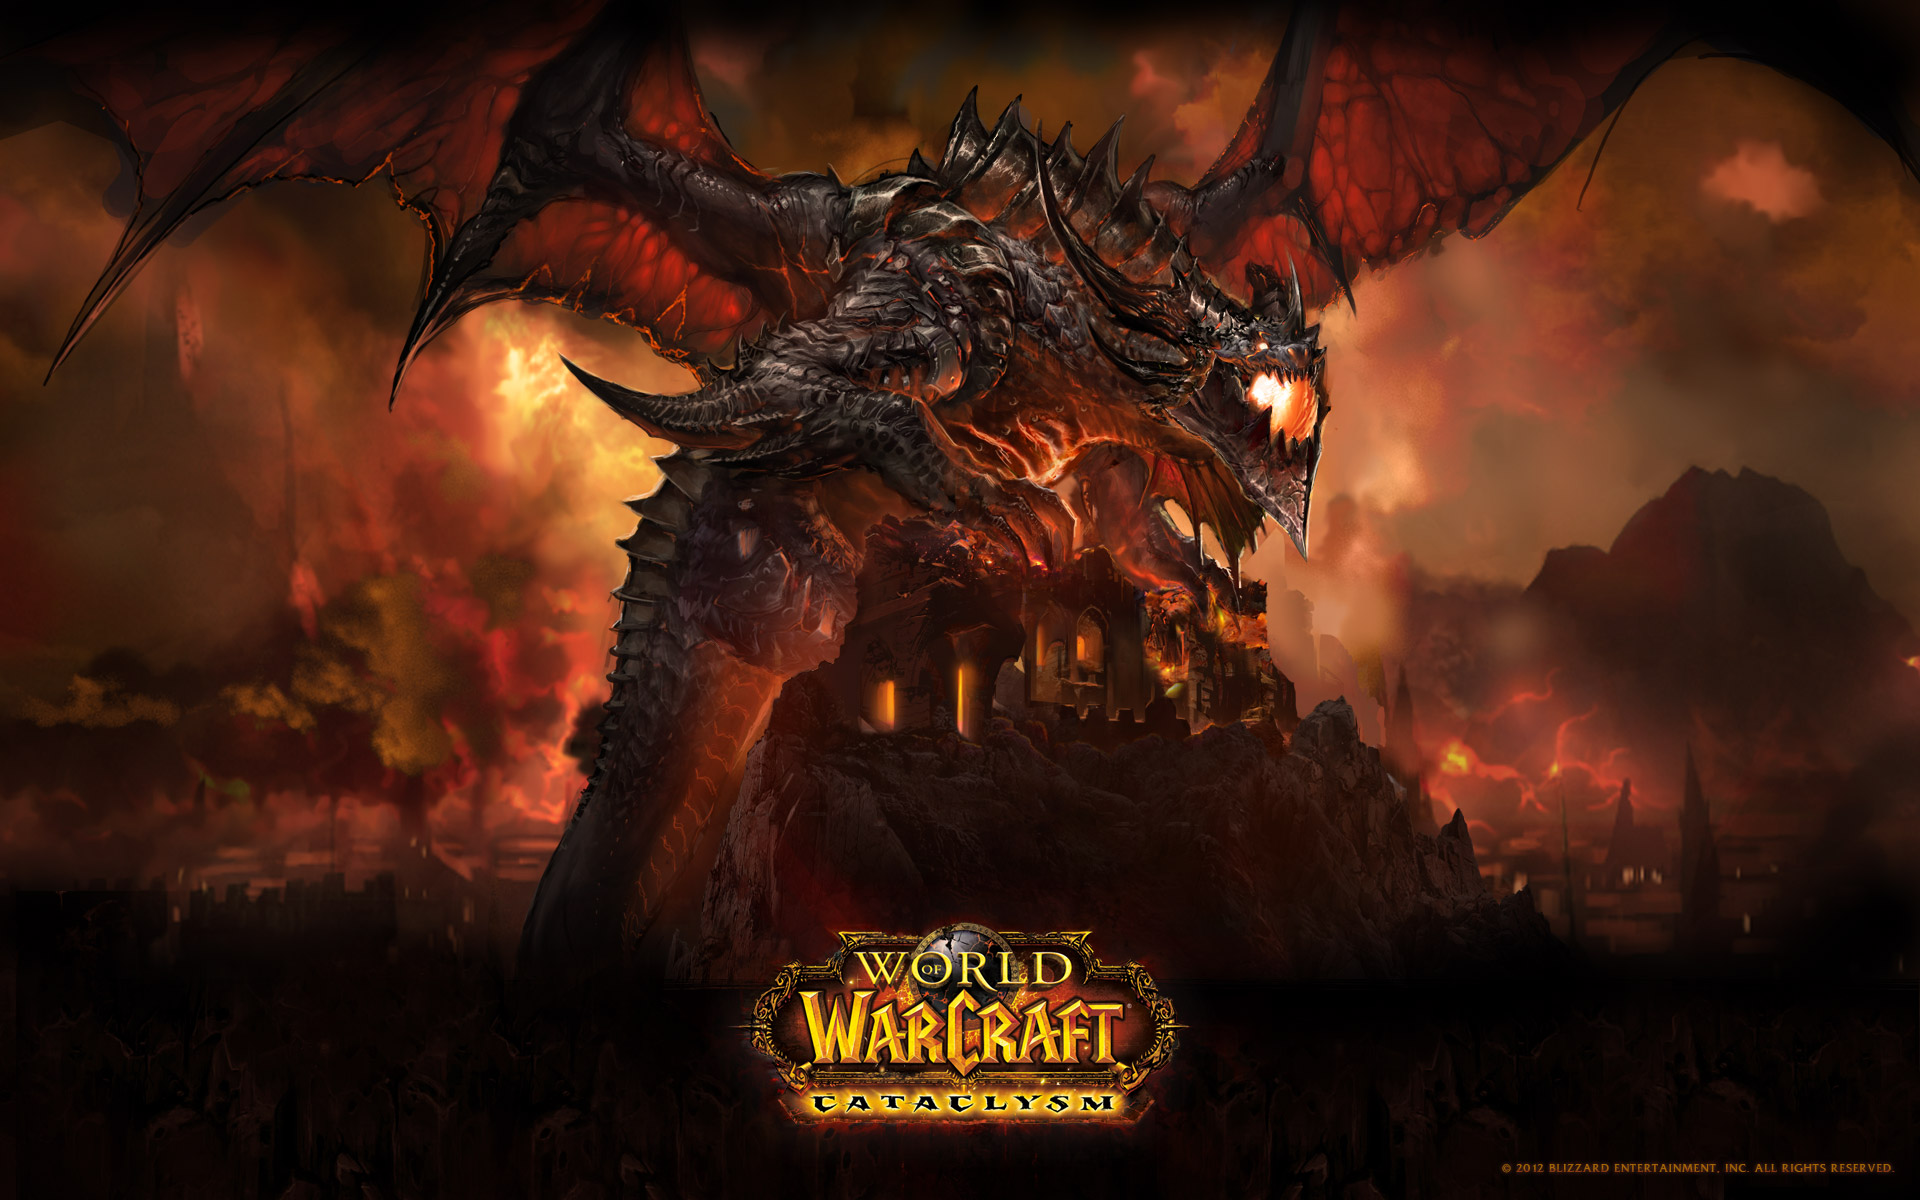 Tapeta ke hře World of Warcraft (WoW)